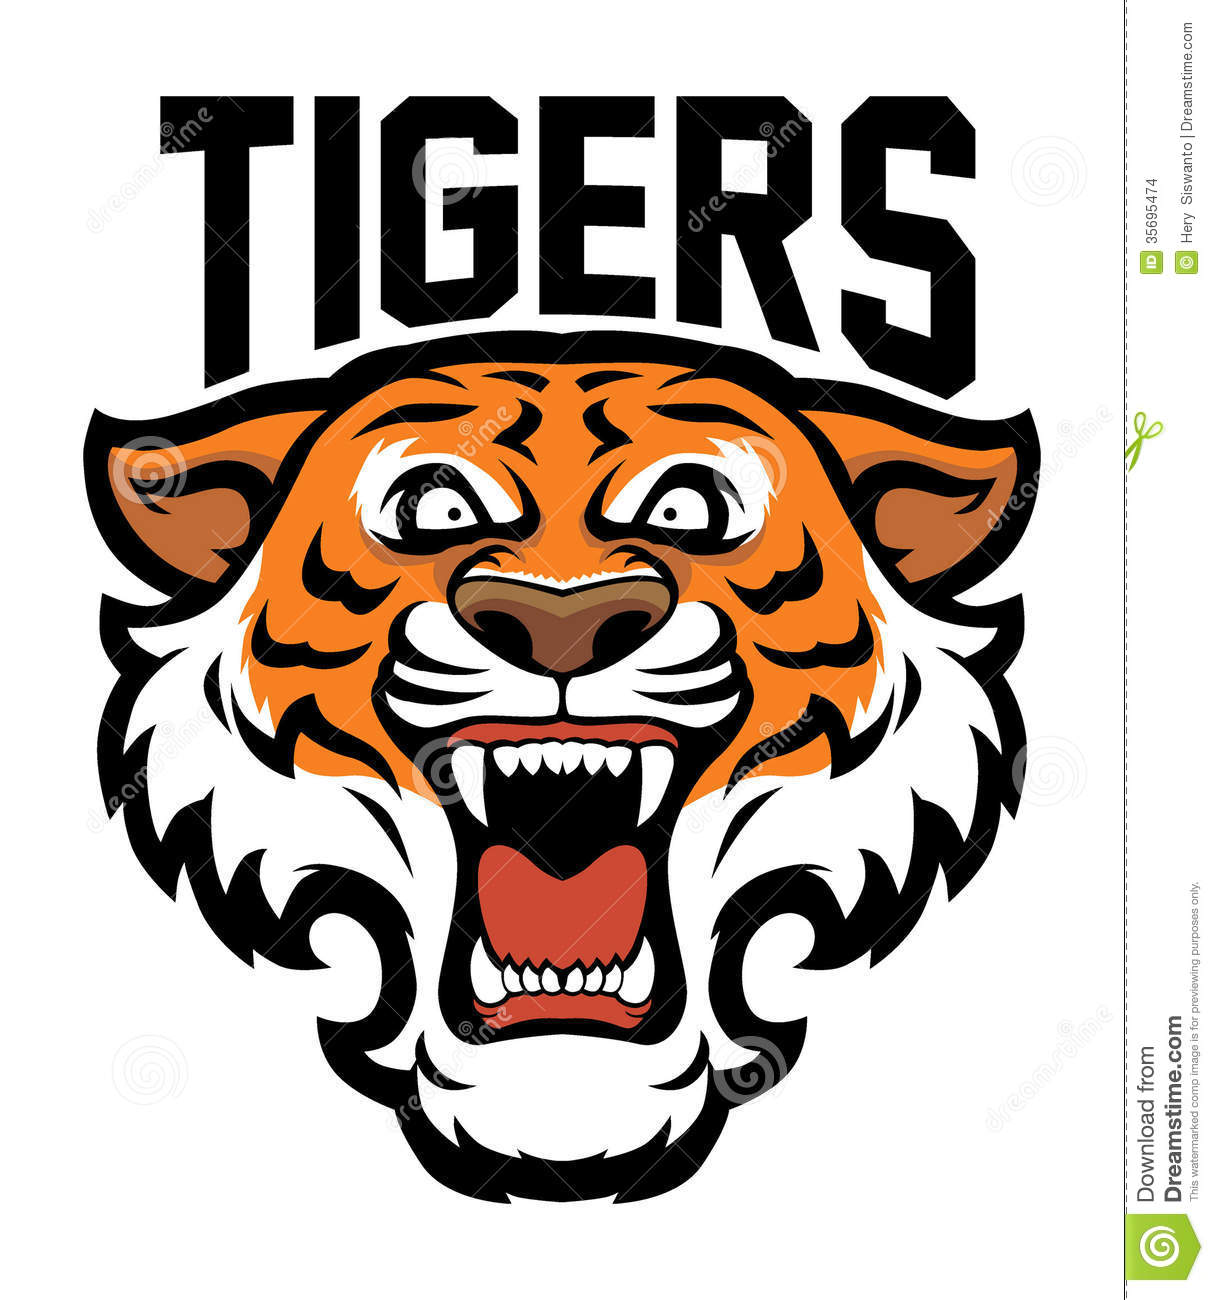 Angry tiger head stock vector. Illustration of icon, fang ...